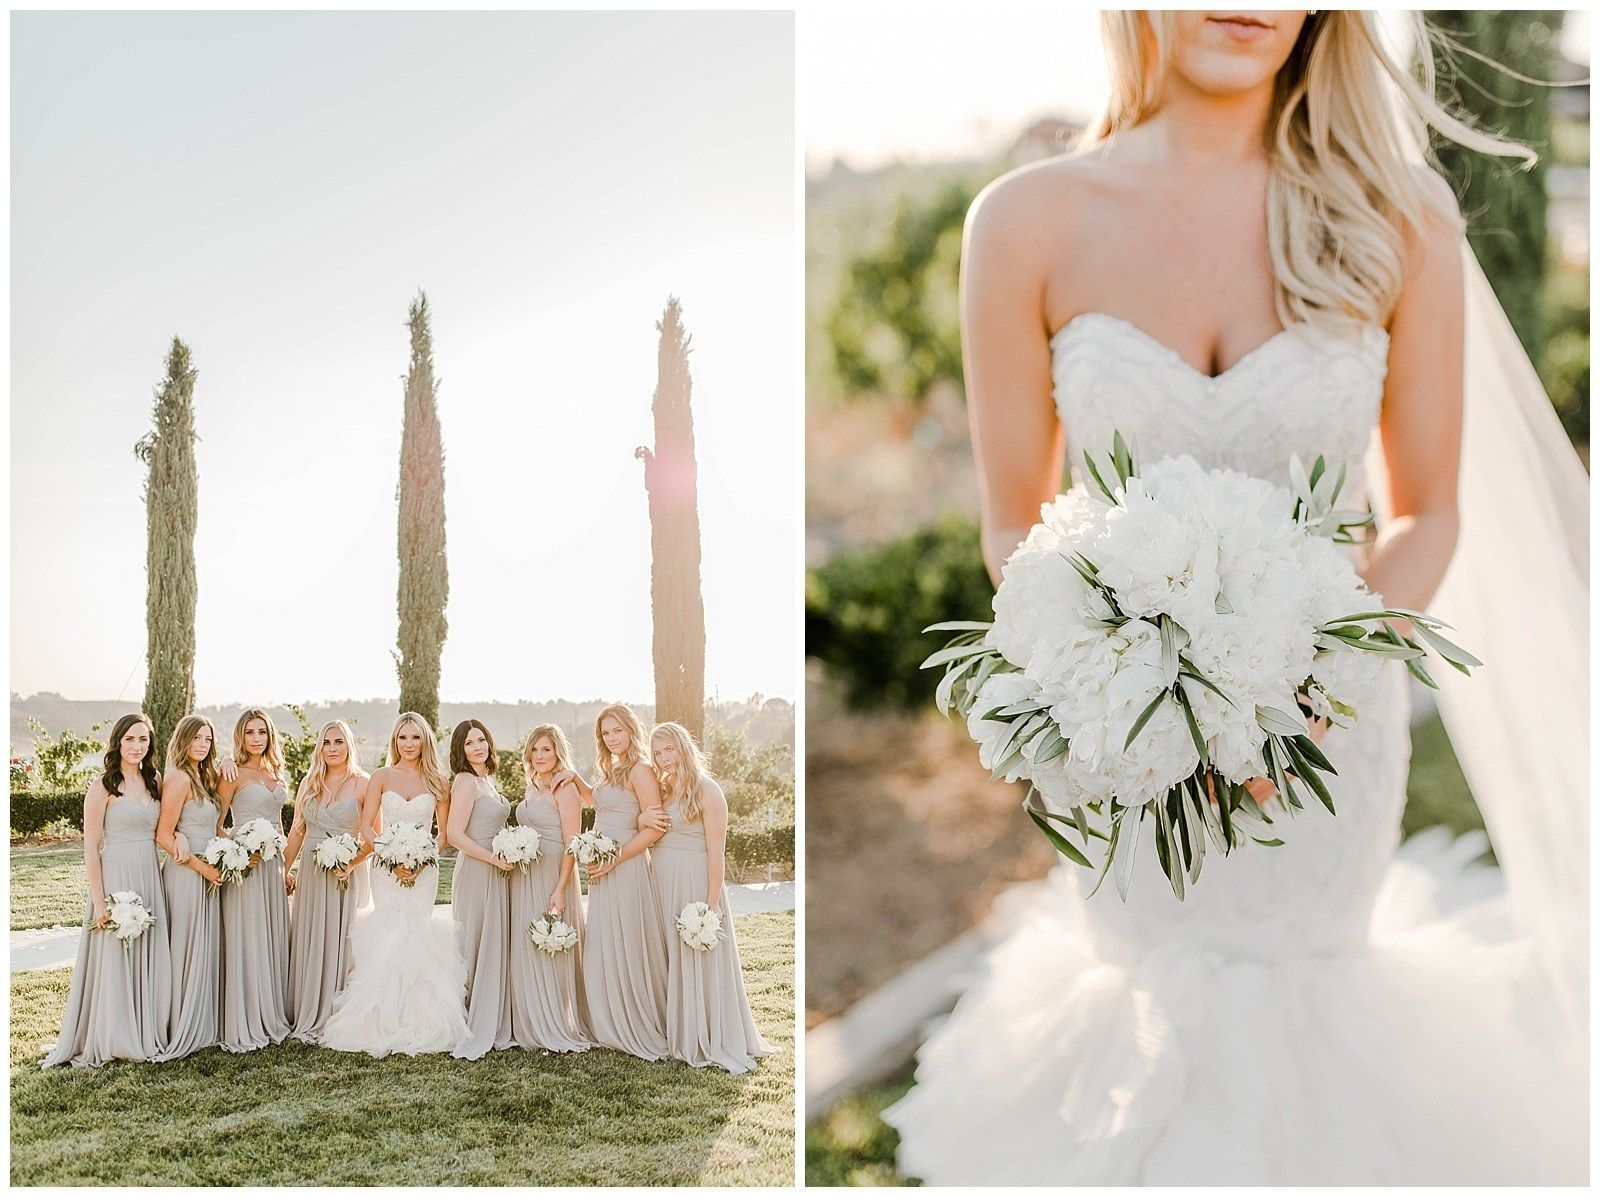 Avensole Winery Wedding in Temecula, CA by Bree + Stephen